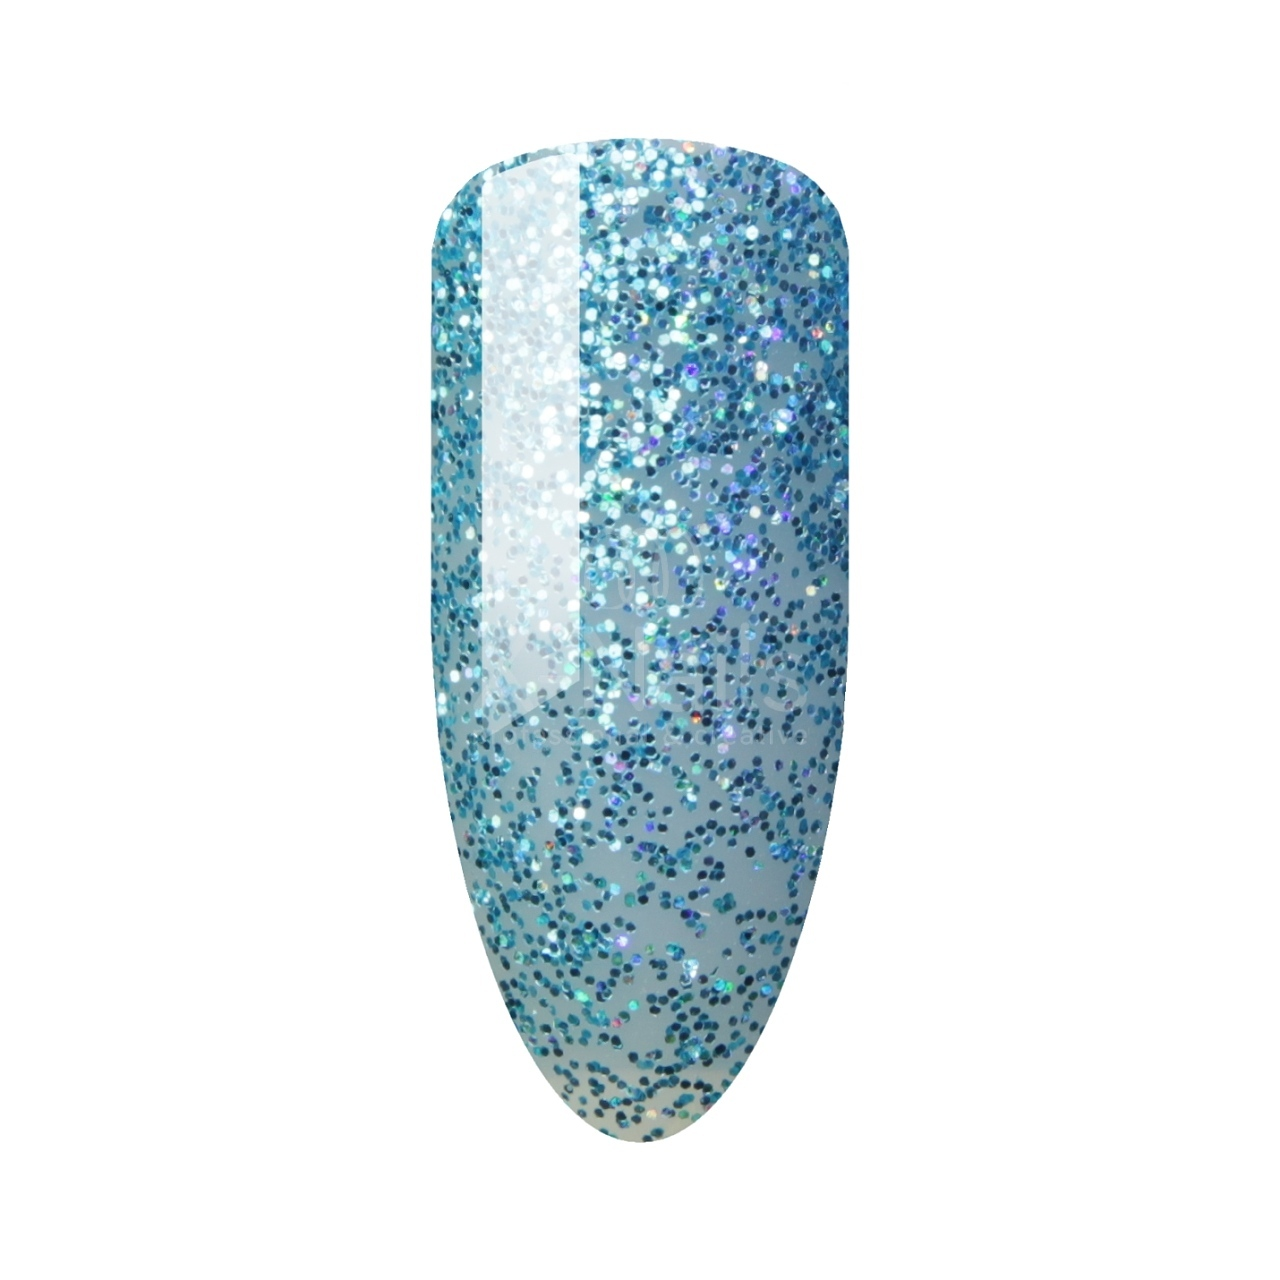 X-NAILS gel lak Amazing Line, 5 ml - GLITTER BLUE